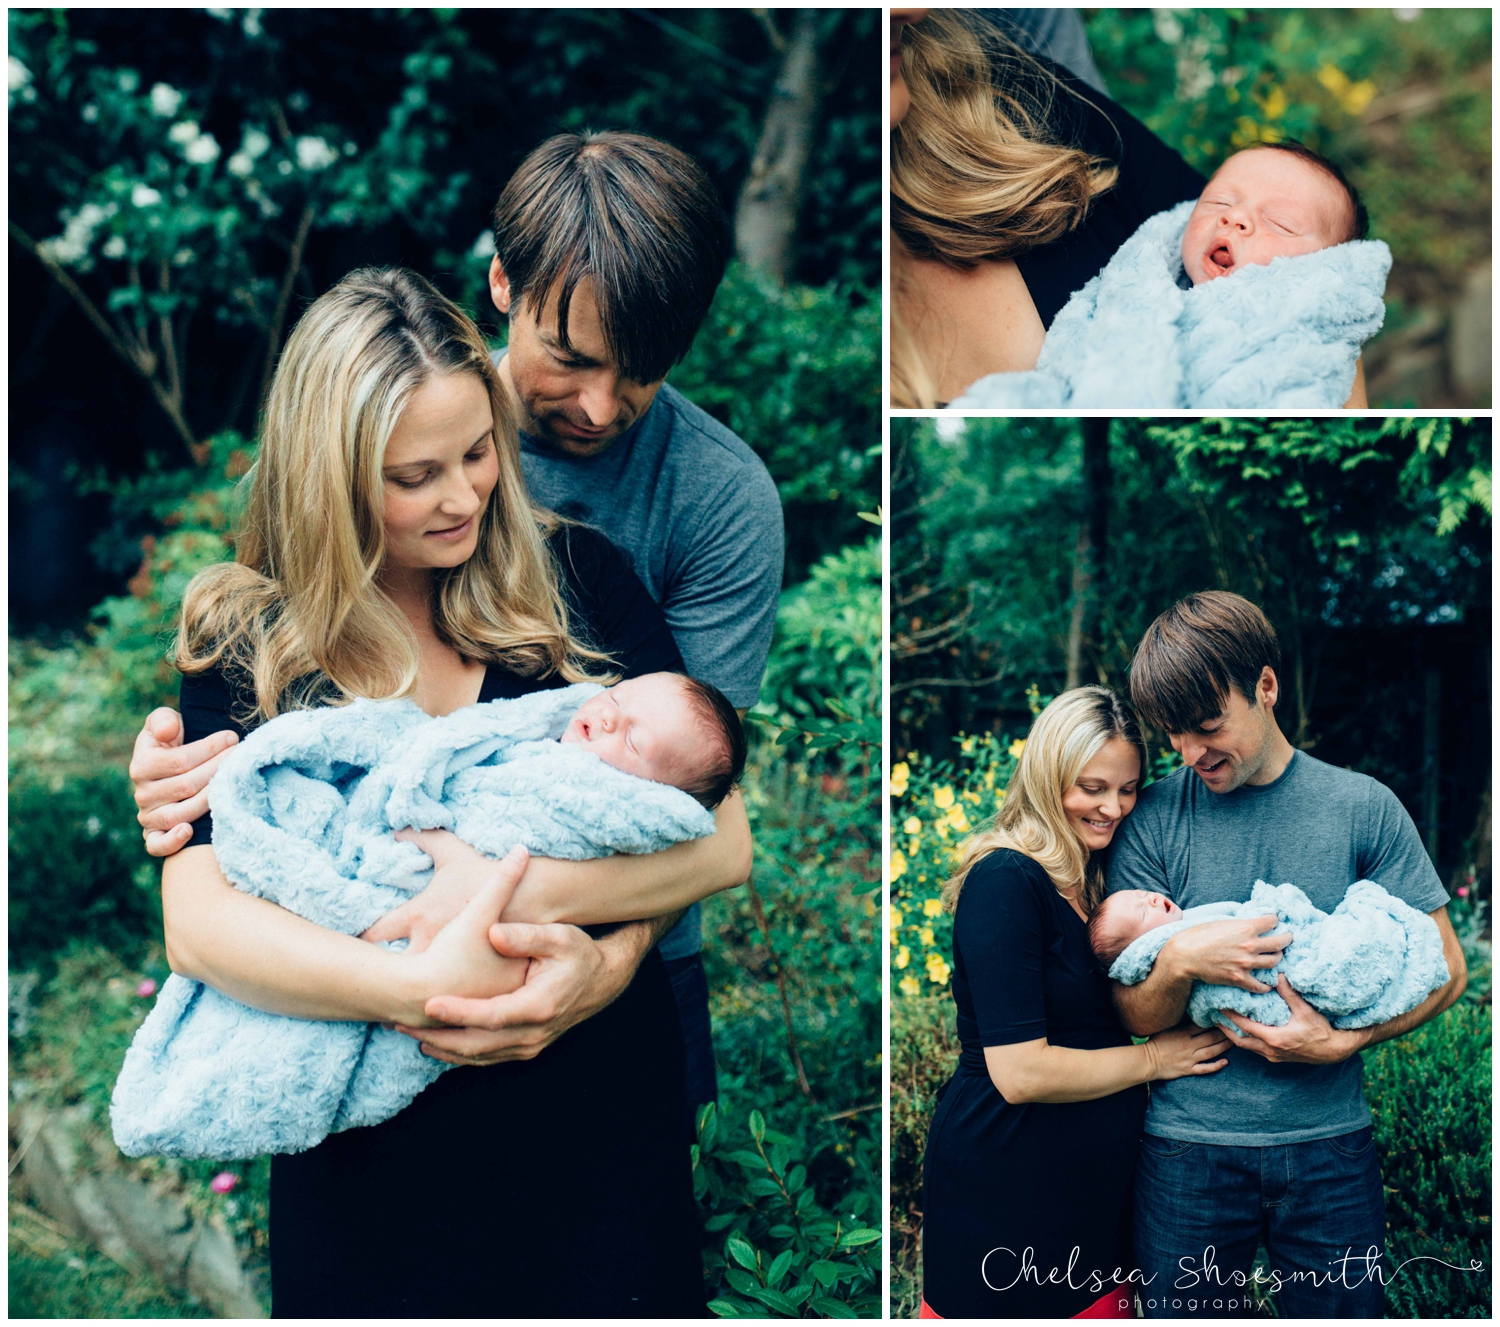 (23 of 57) Connor Newborn Photoshoot Handforth Chelsea Shoesmith Photography_